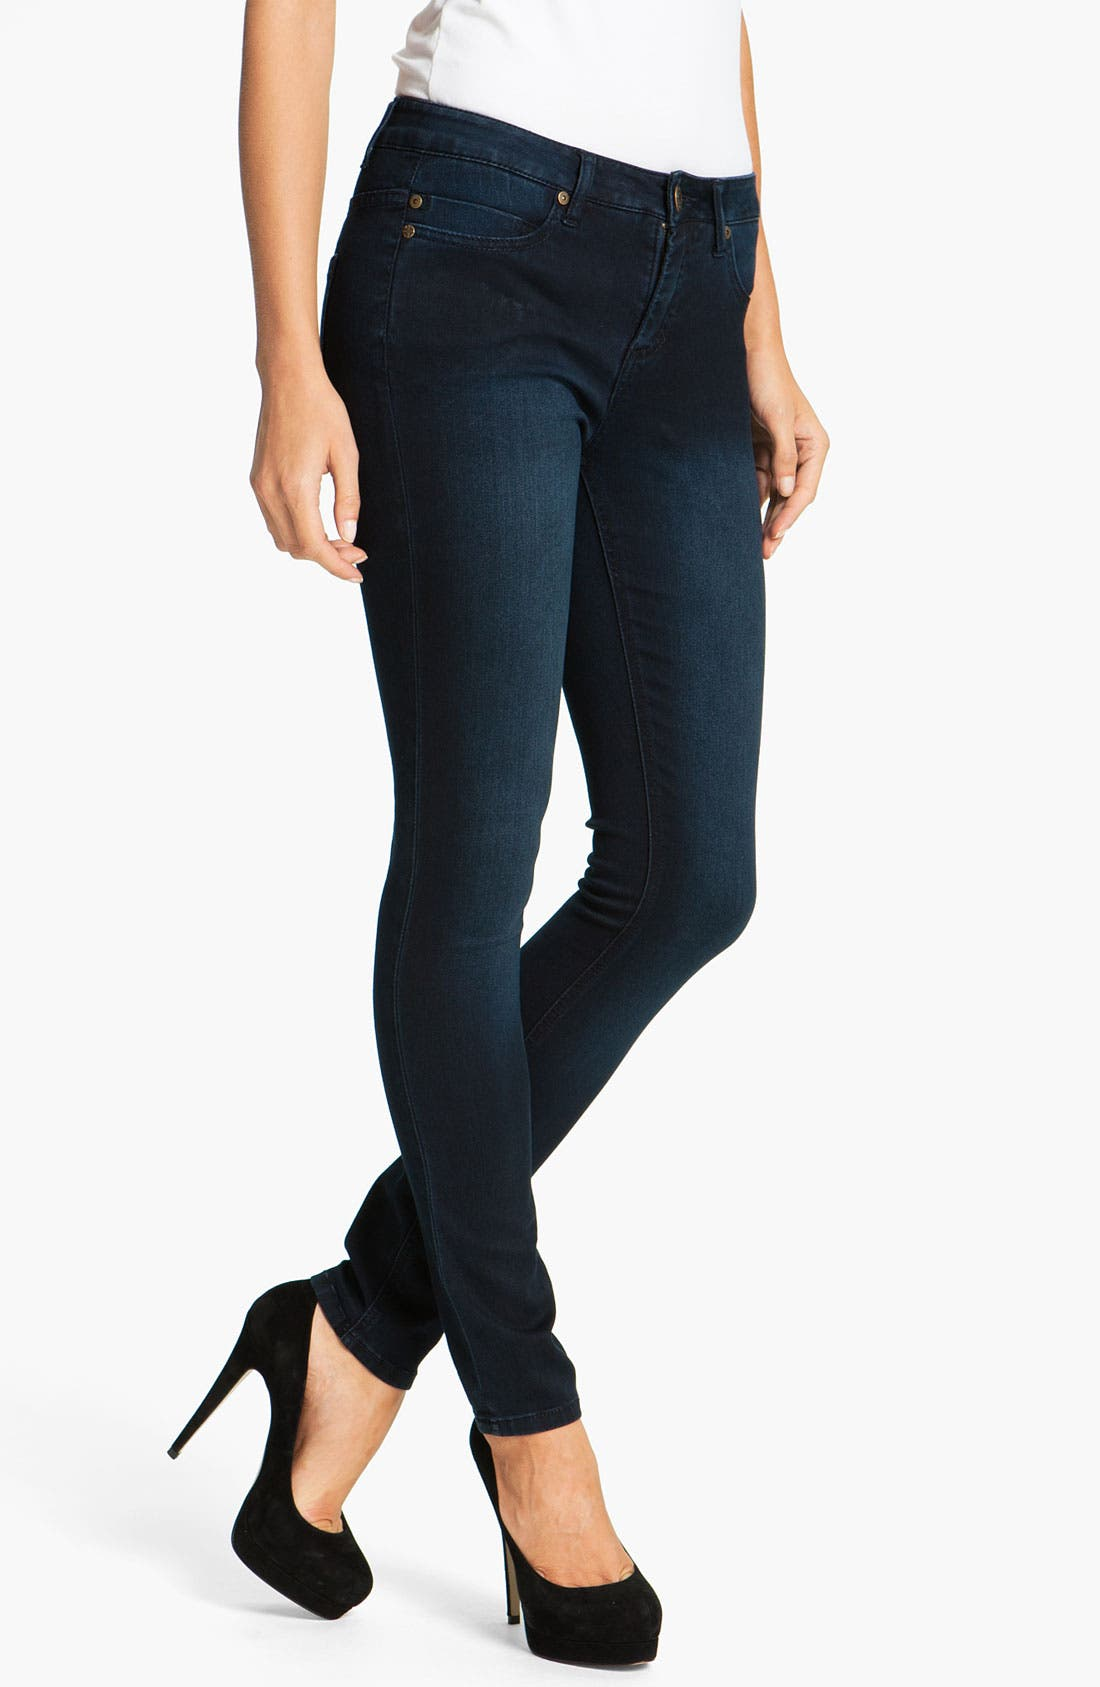 Main Image - Liverpool Jeans Company 'Abby' Skinny Supersoft Stretch Jeans (Regular & Petite)